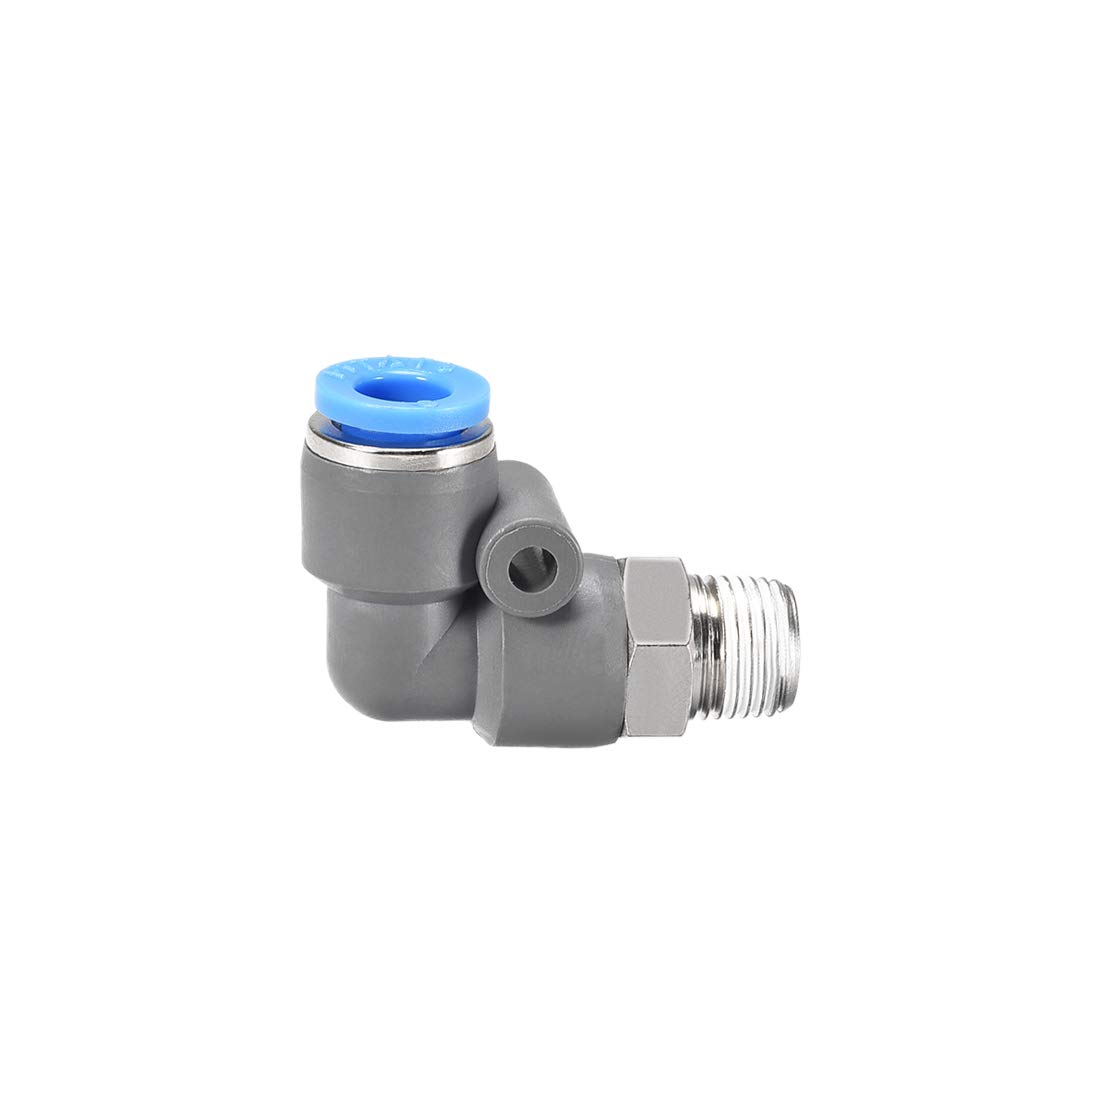 uxcell Elbow Push to Connect Air Fittings 6mm Tube OD X 1//8PT Male Thread Pneumatic Quick Release Connectors Grey 2Pcs